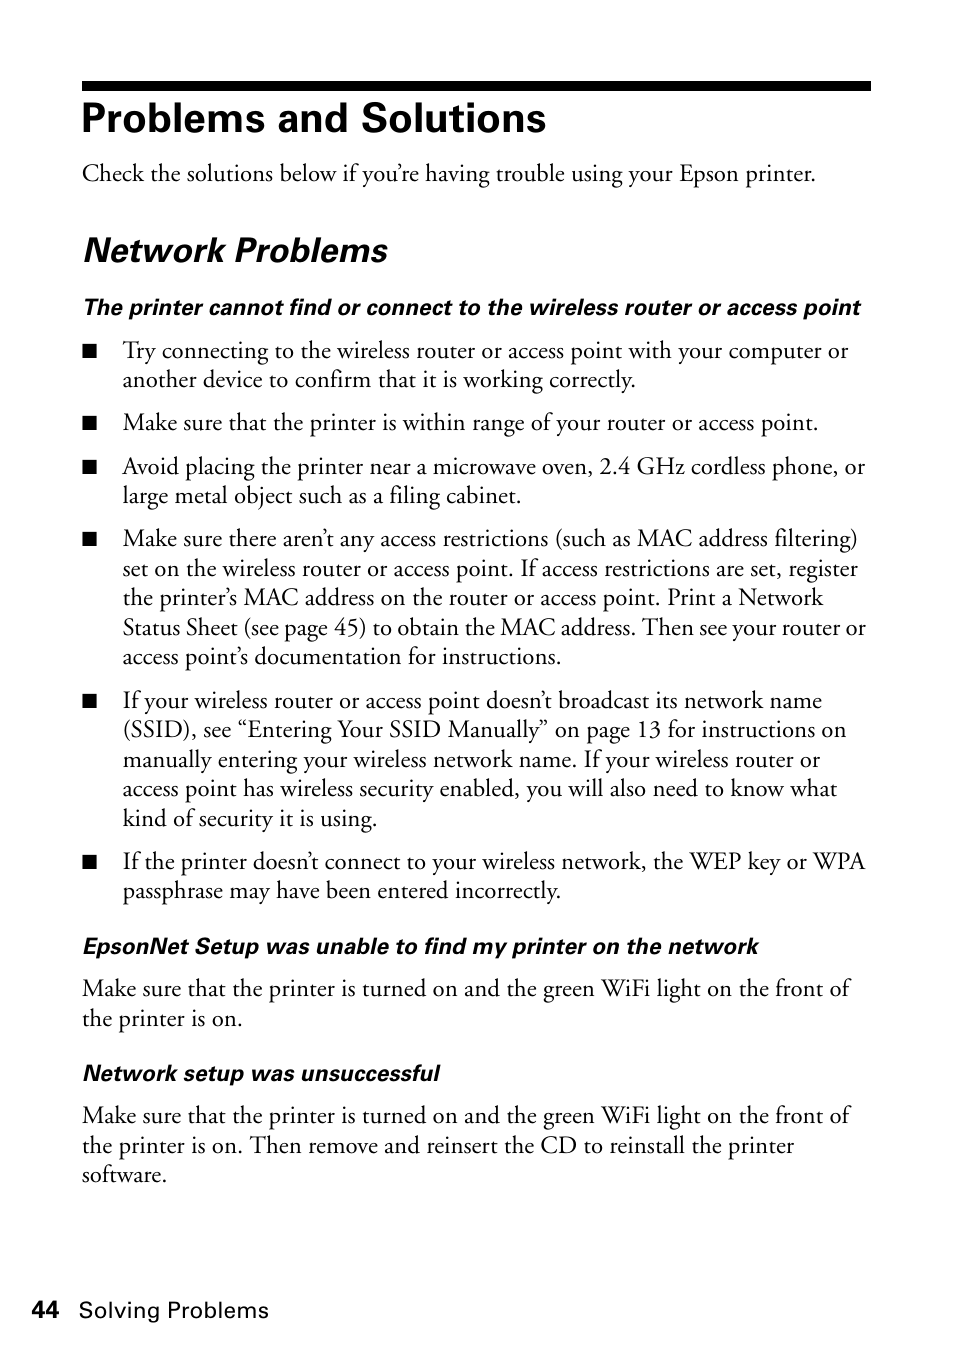 How Do I Connect My Epson Printer To A New Wireless Router